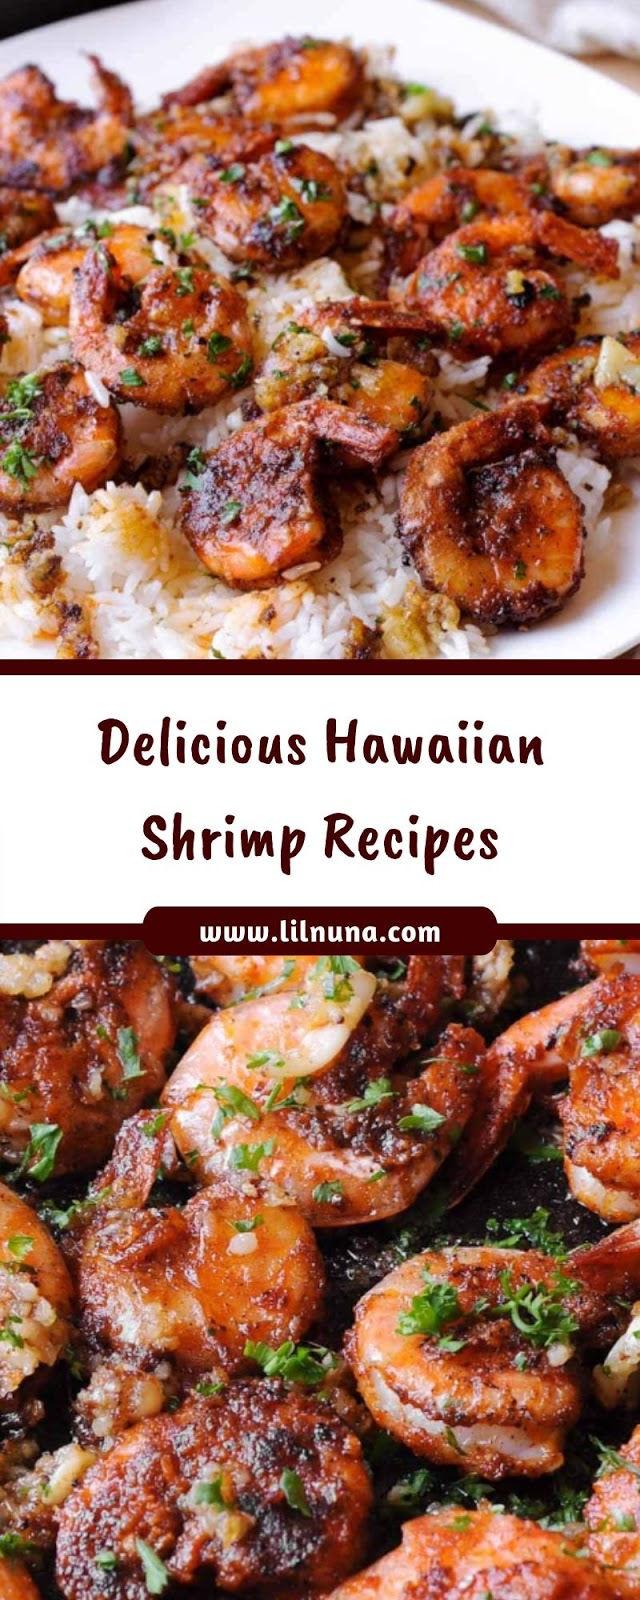 Delicious Hawaiian Shrimp Recipes